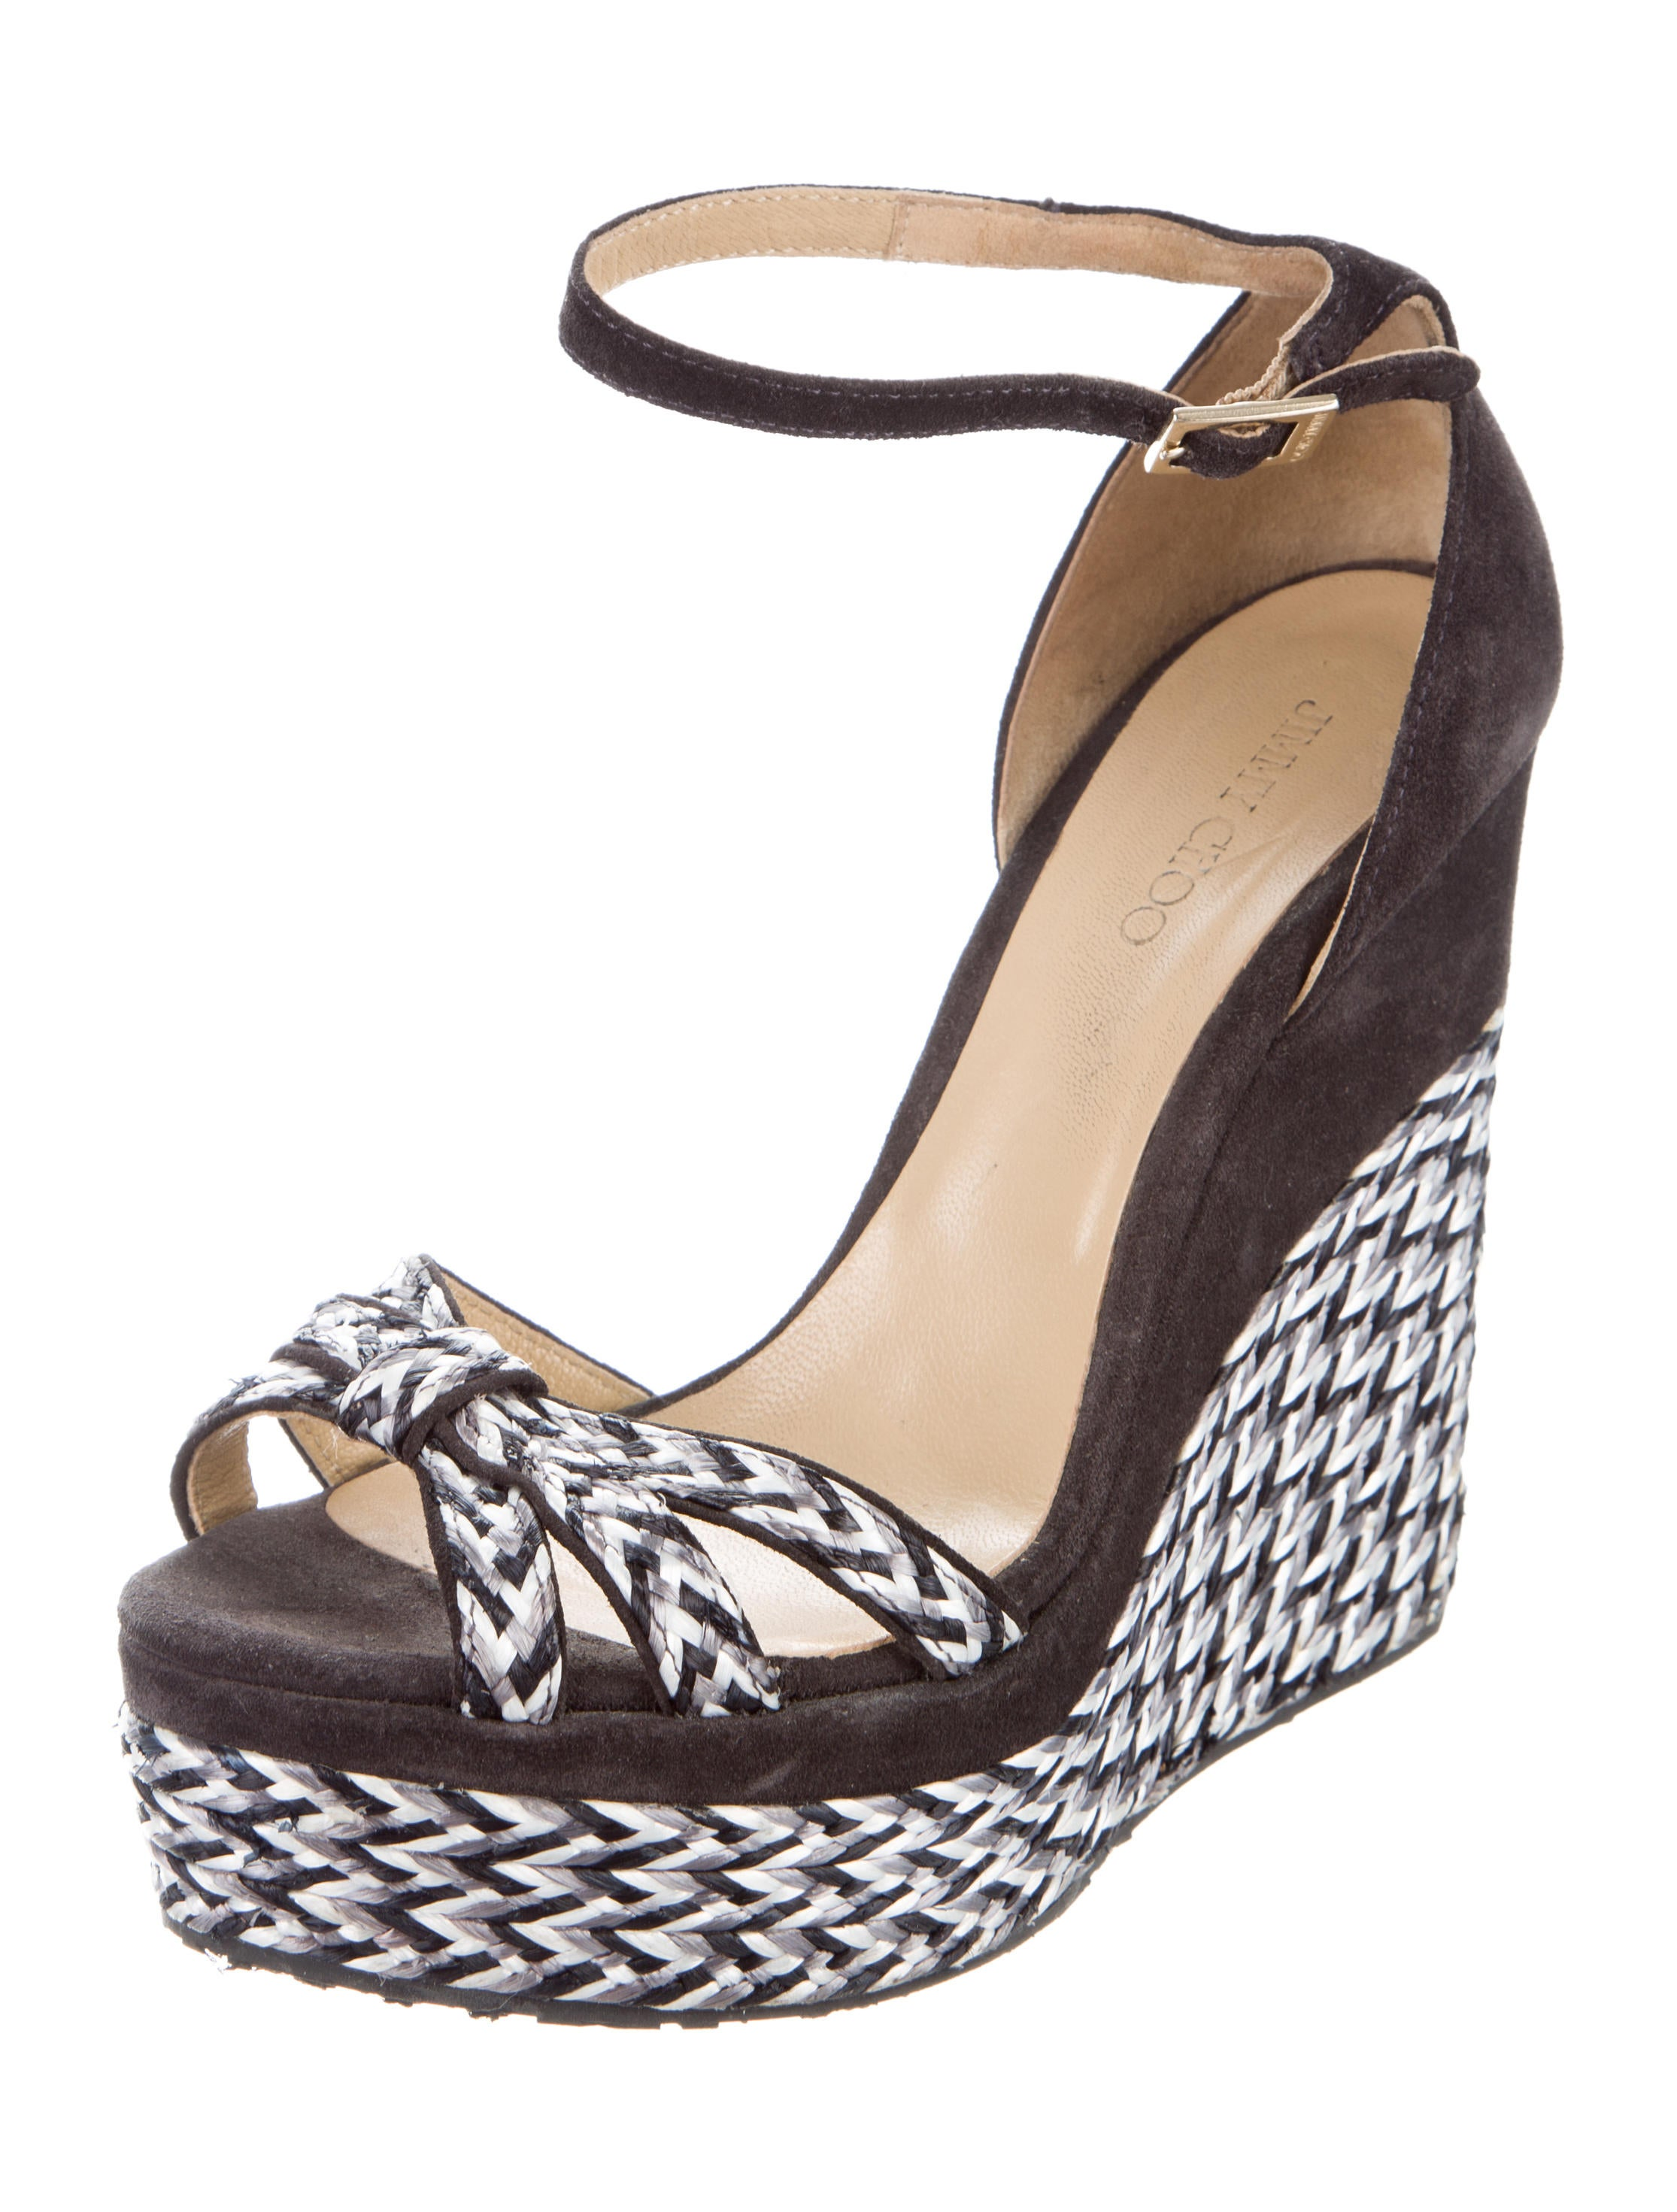 Jimmy Choo Ankle Strap Wedge Sandals - Shoes - JIM73304 ...